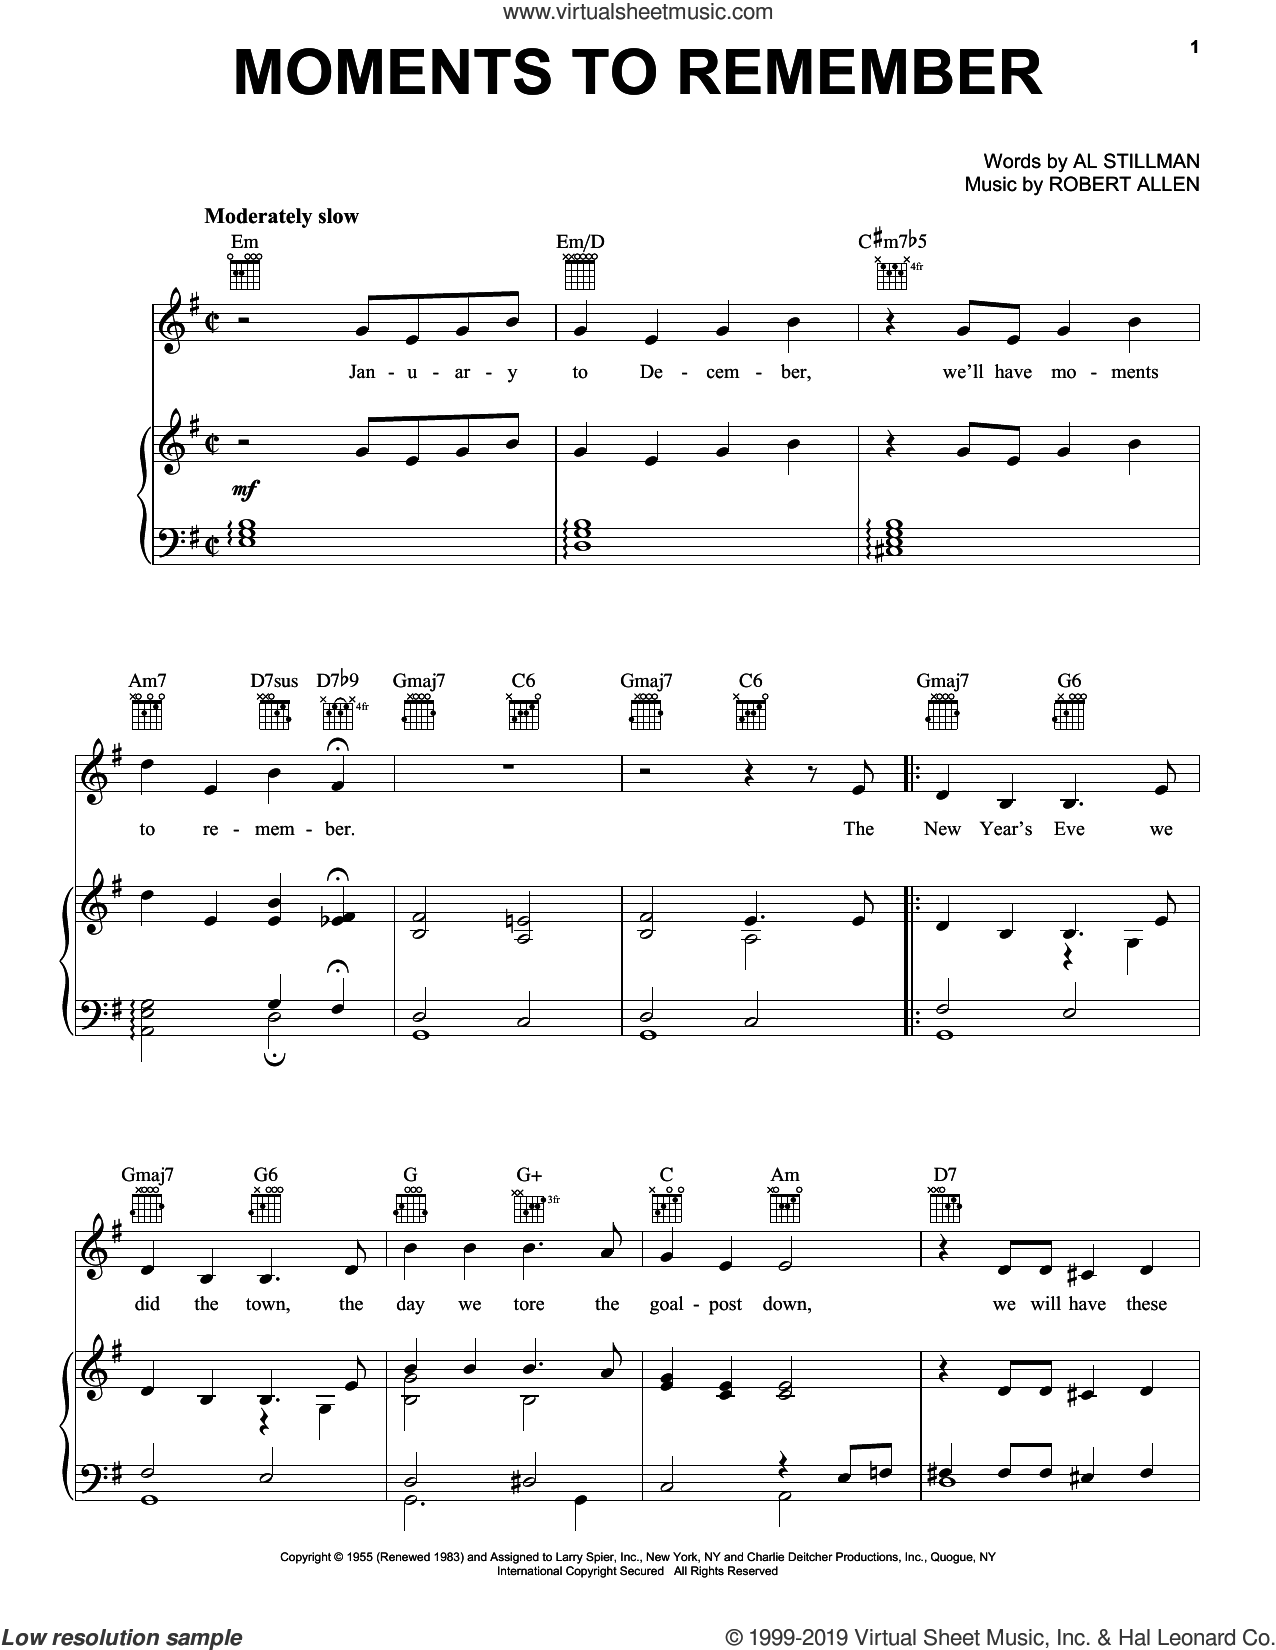 Moments To Remember sheet music for voice, piano or guitar by The Four Lads, Al Stillman and Robert Allen, intermediate skill level